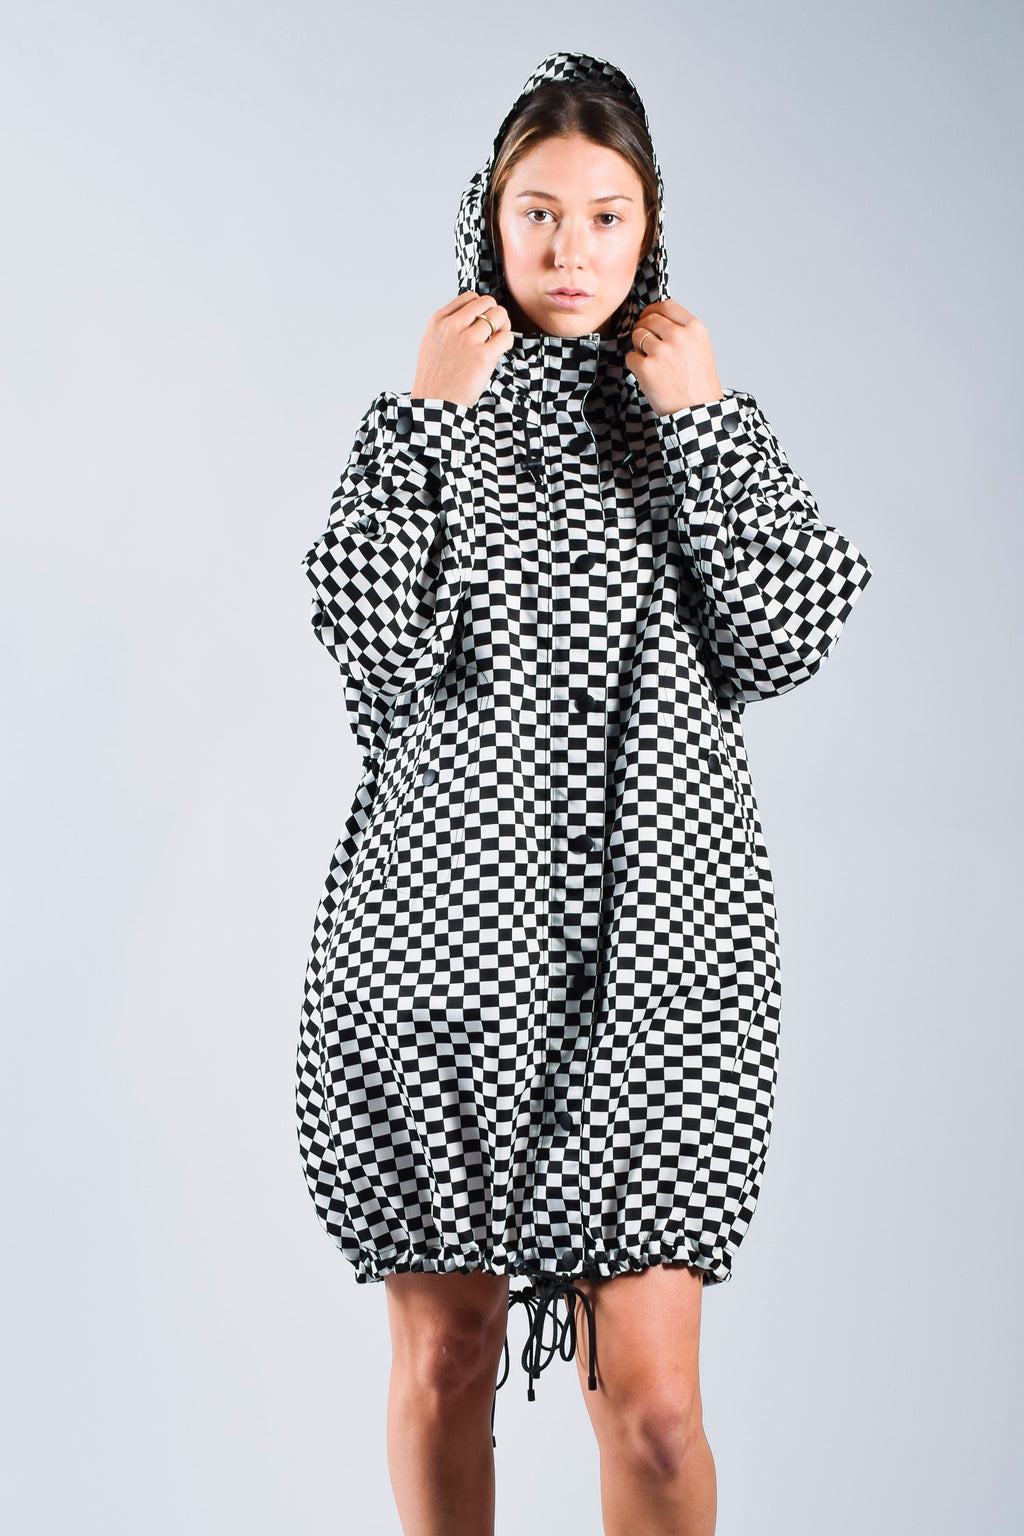 Christian Dior Black & White Checkered Raincoat Size 2